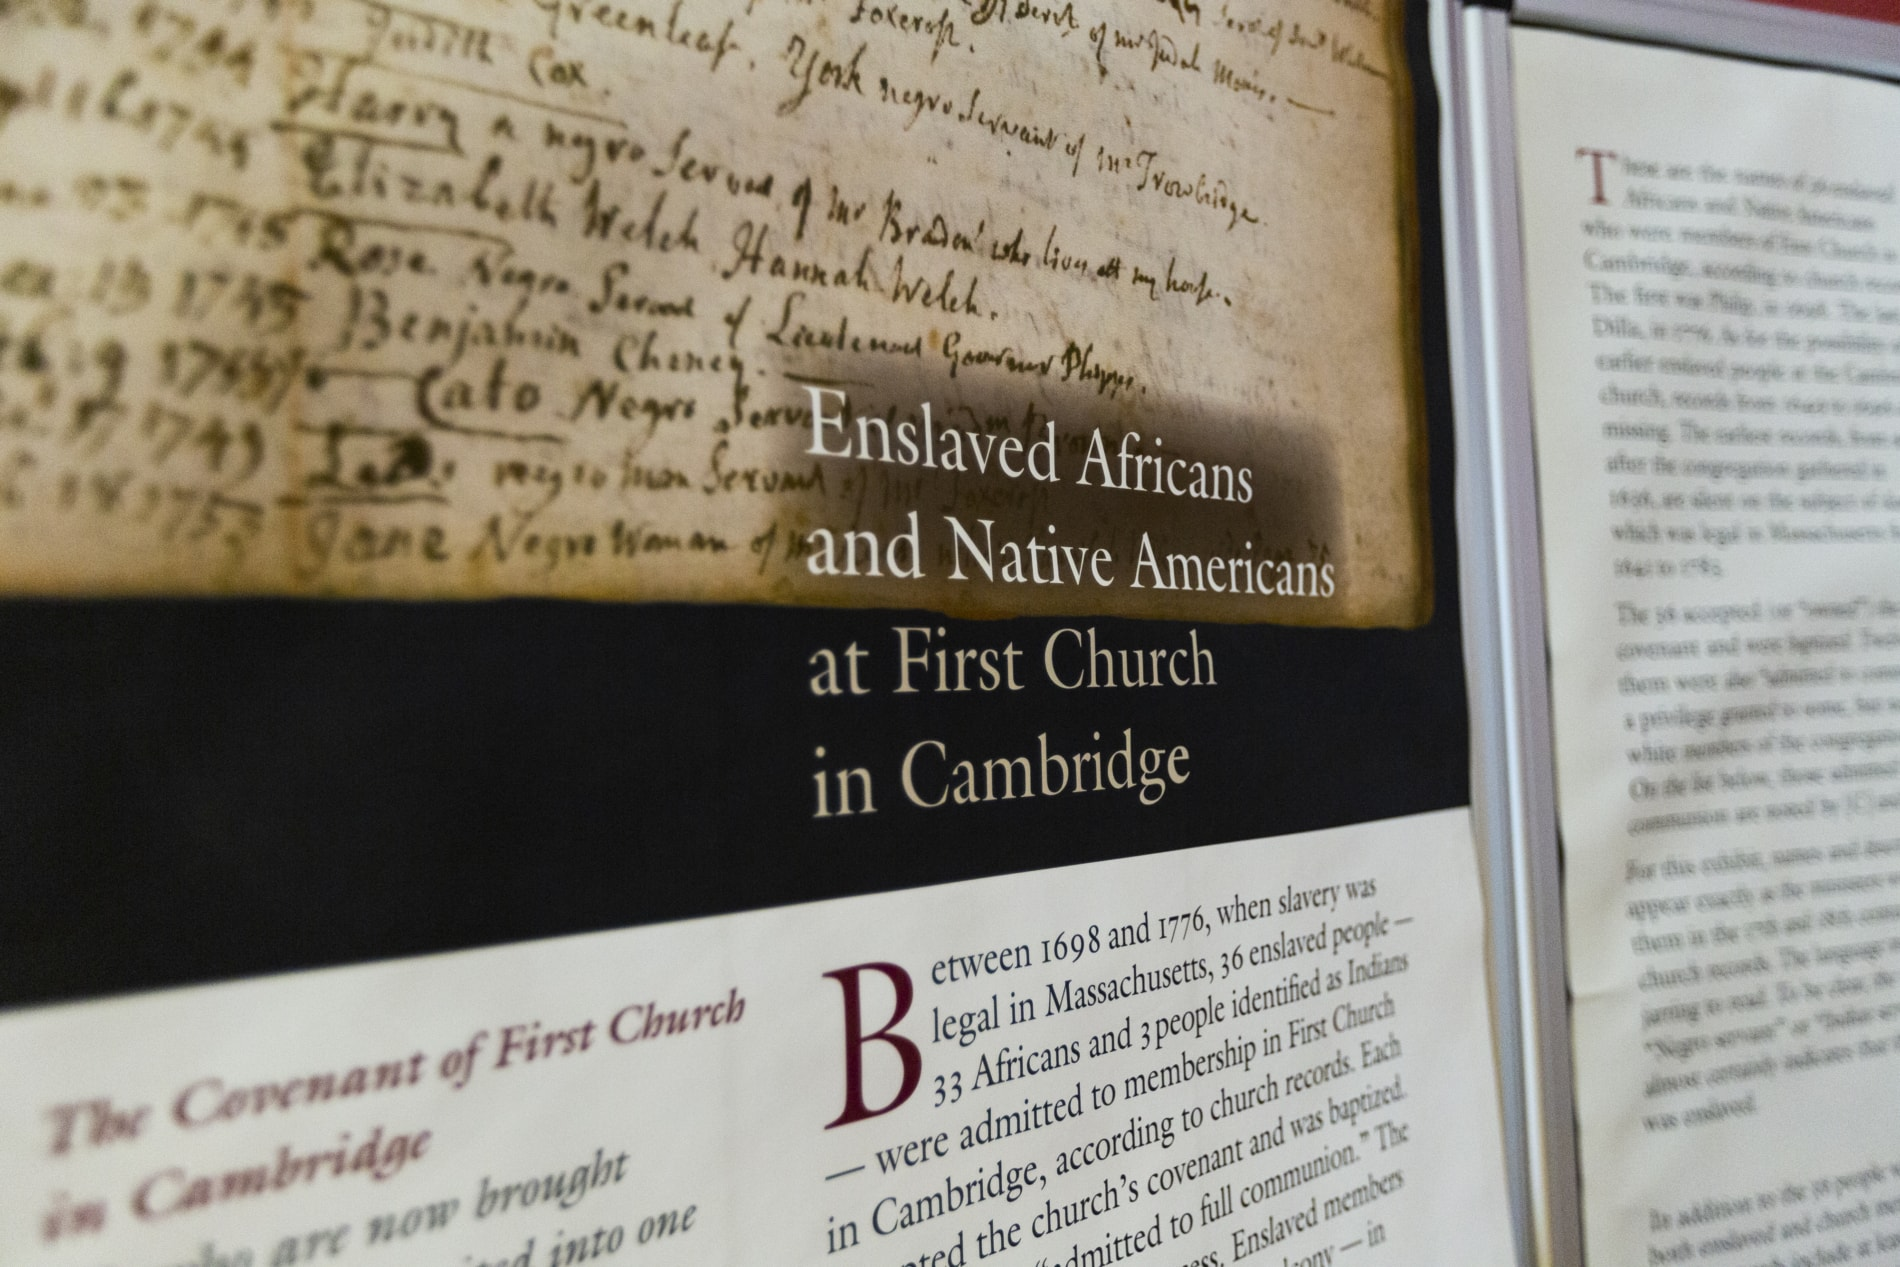 An wall panel detailing the history of Enslaved Africans and Native Americans at First Church in Cambridge